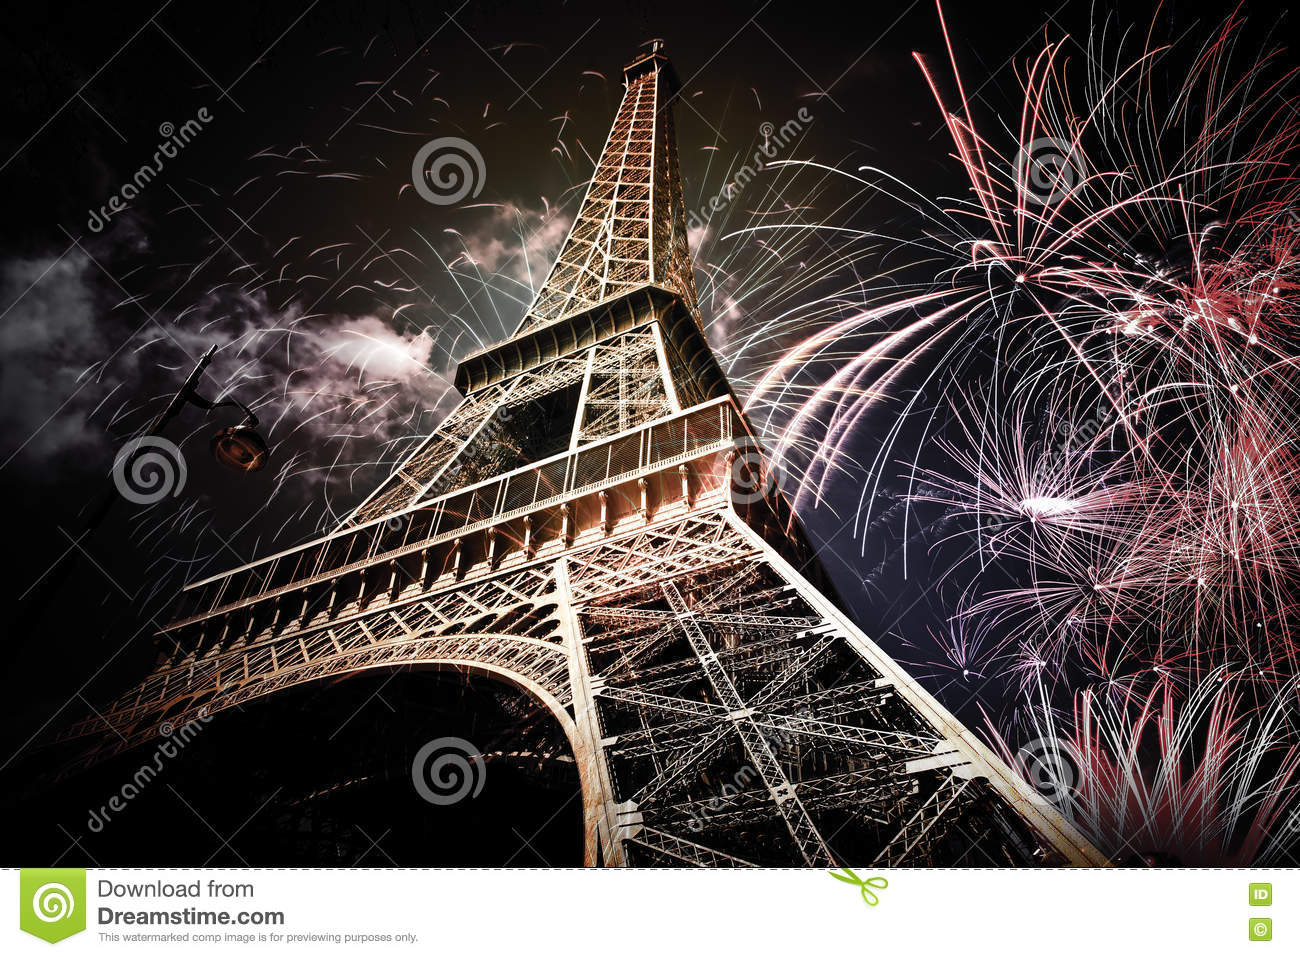 Eiffel tower & x28;Paris, France& x29; with fireworks